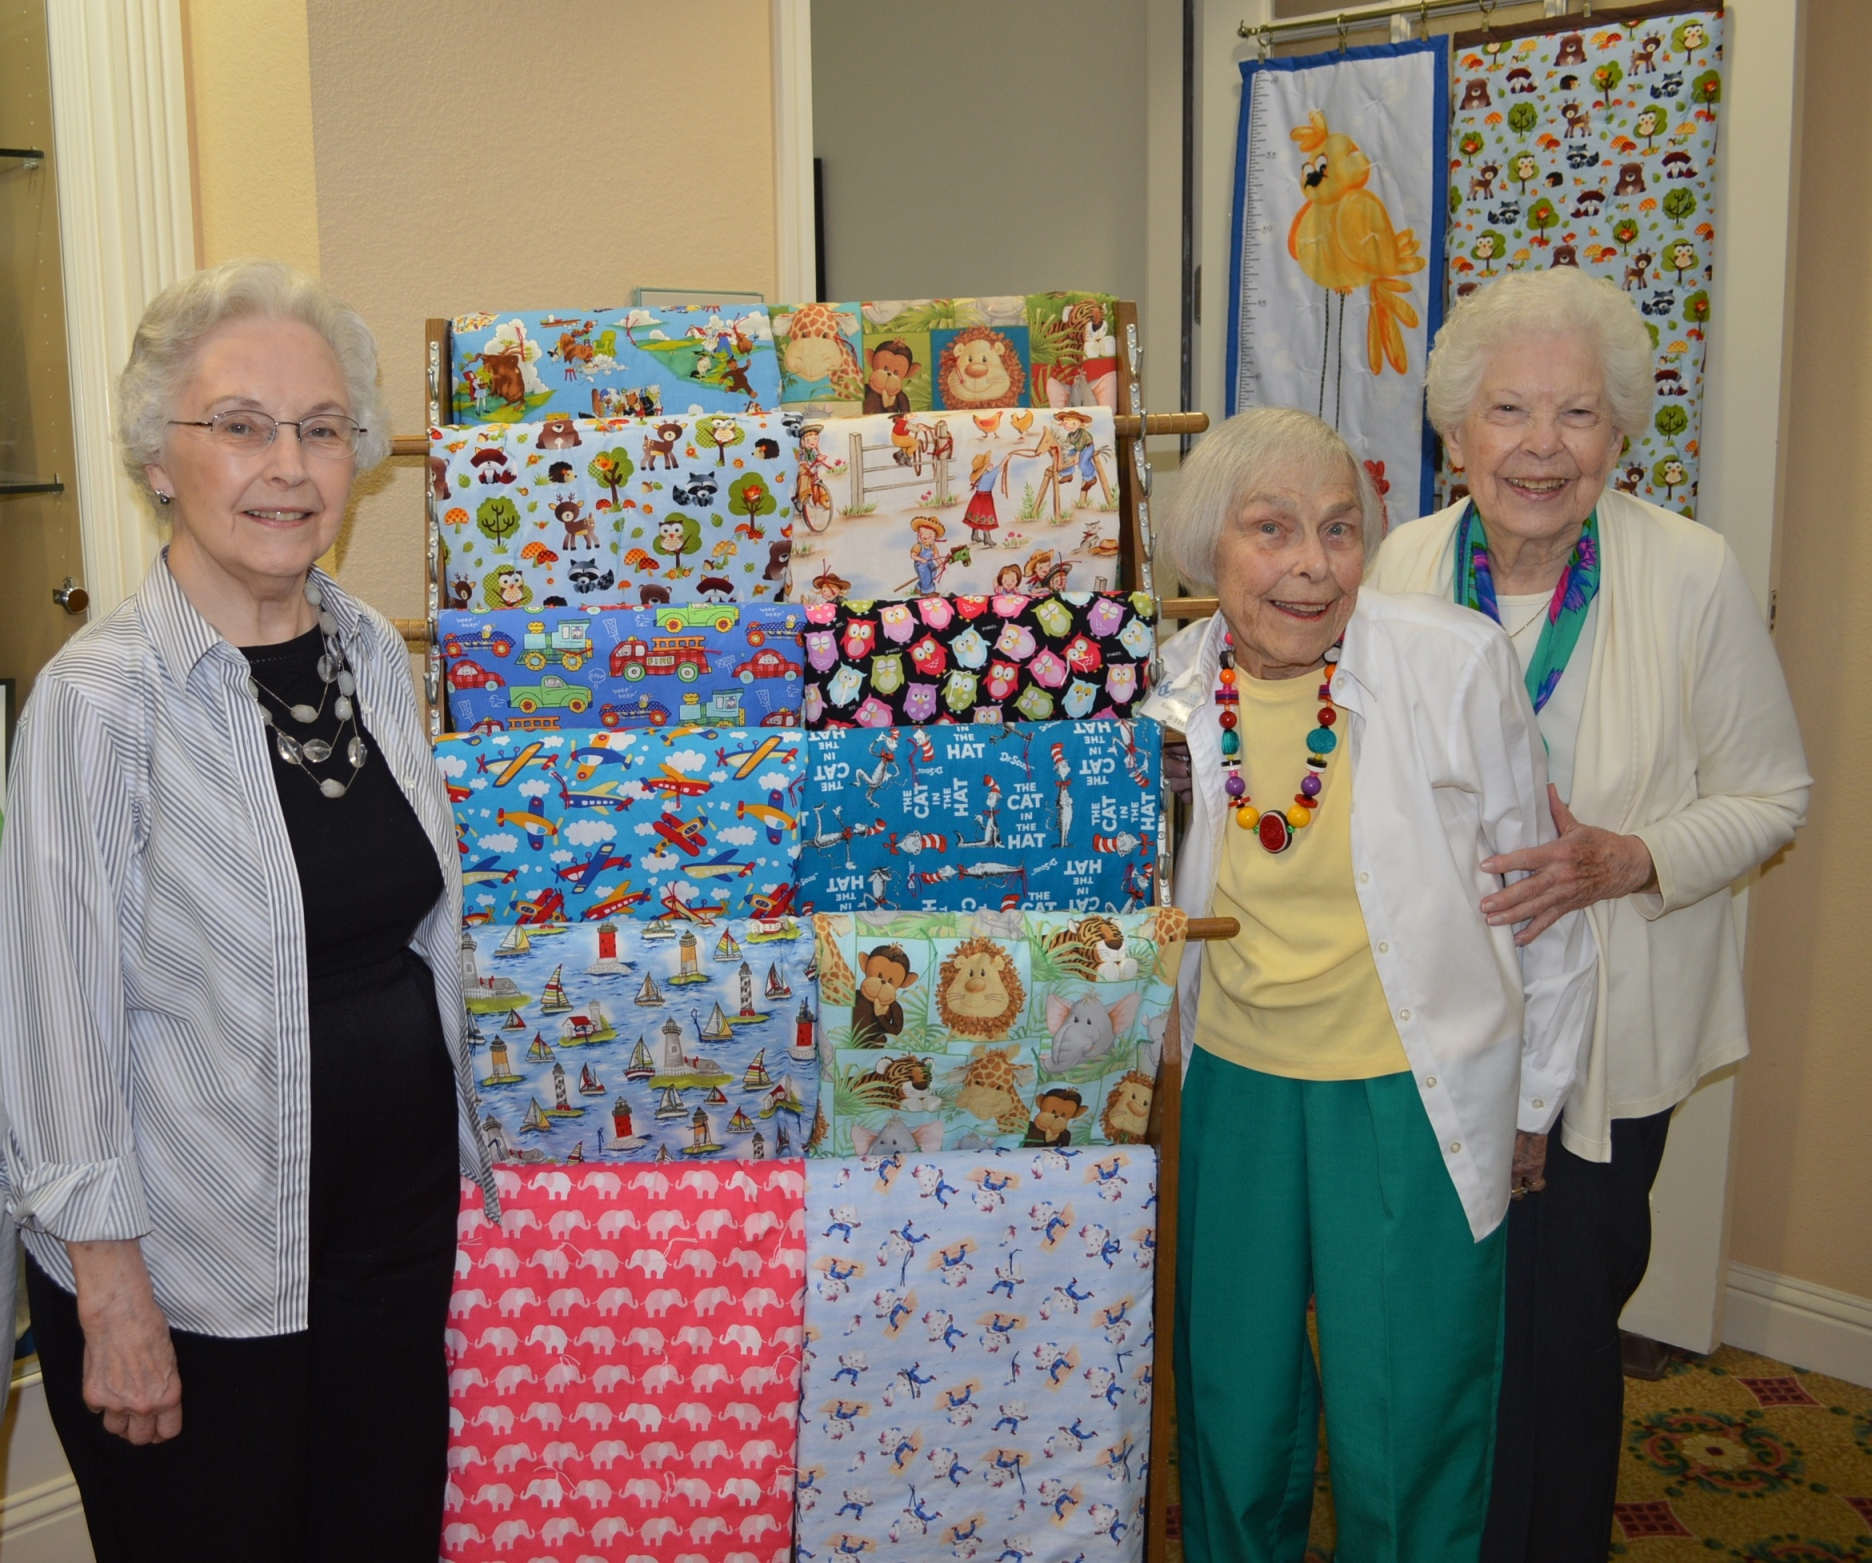 quilts made by local seniors